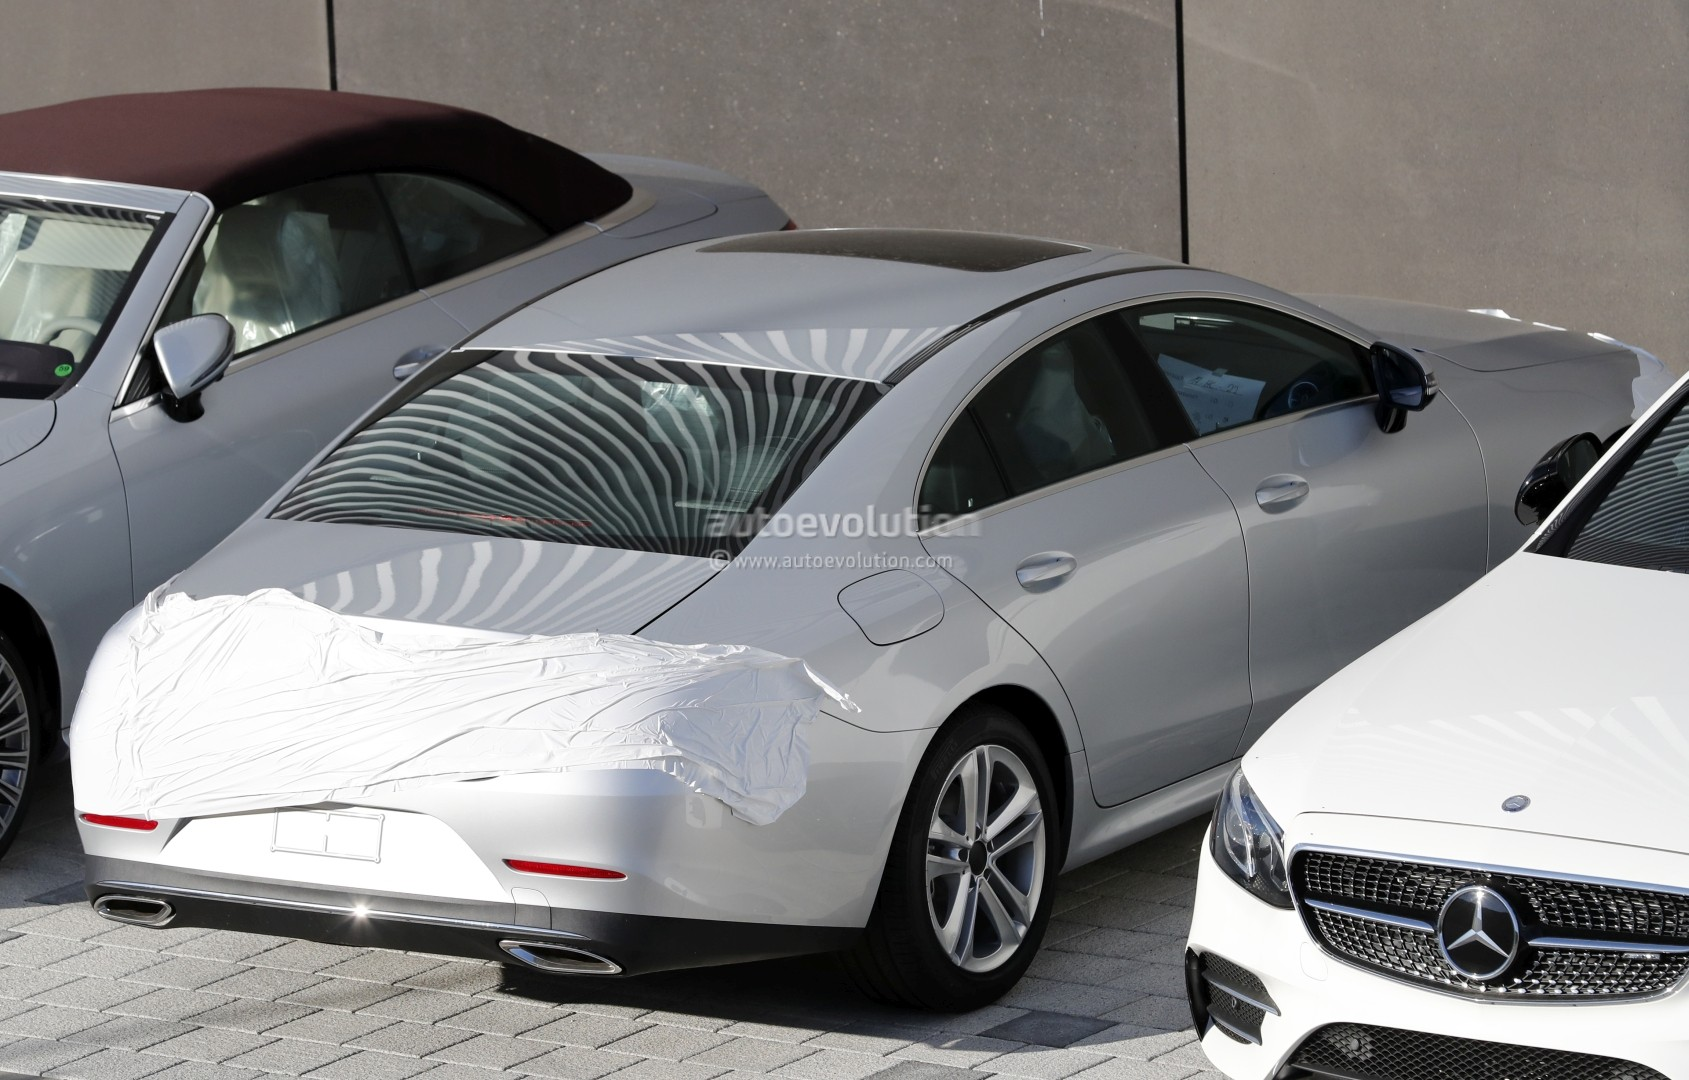 spyshots 2019 mercedes benz cls reveals more design details autoevolution. Black Bedroom Furniture Sets. Home Design Ideas